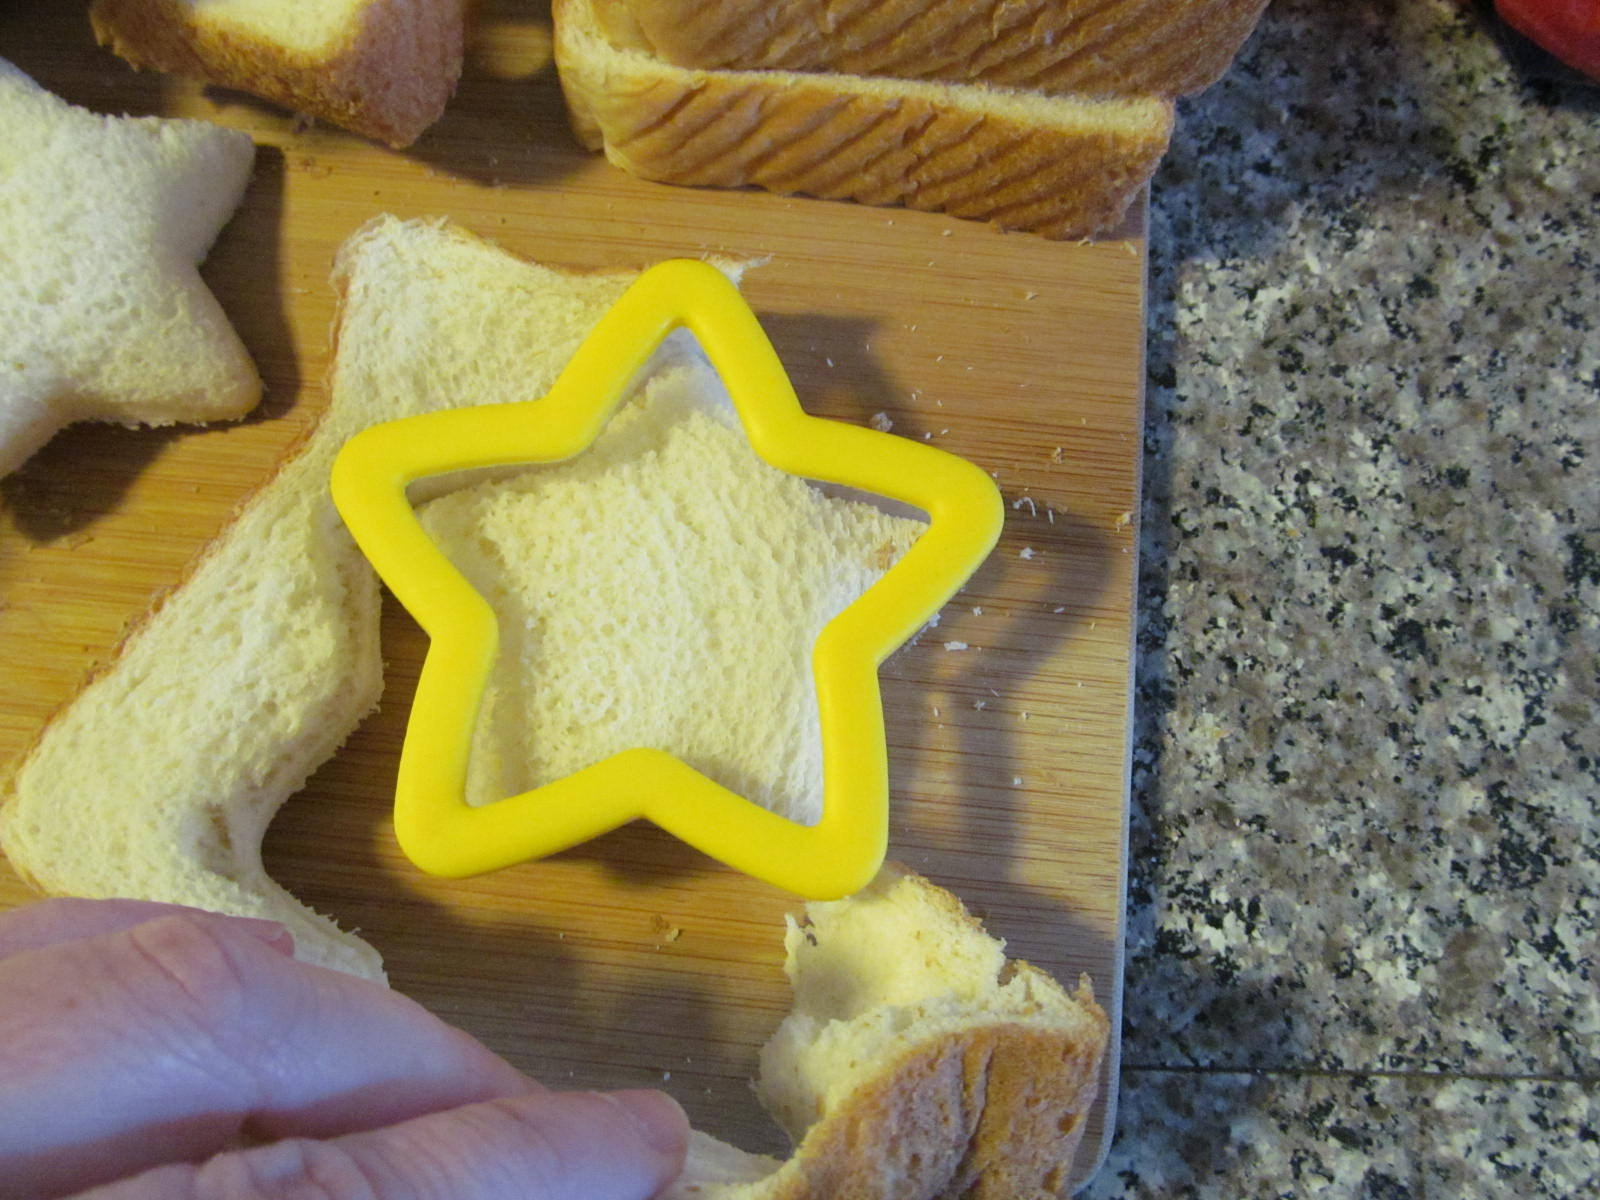 Place The Bread On A Cutting Board And Center The Star Shape In The Middle  Of The Slice Press Down Firmly And Tear Away The Excess Bread From The  Around